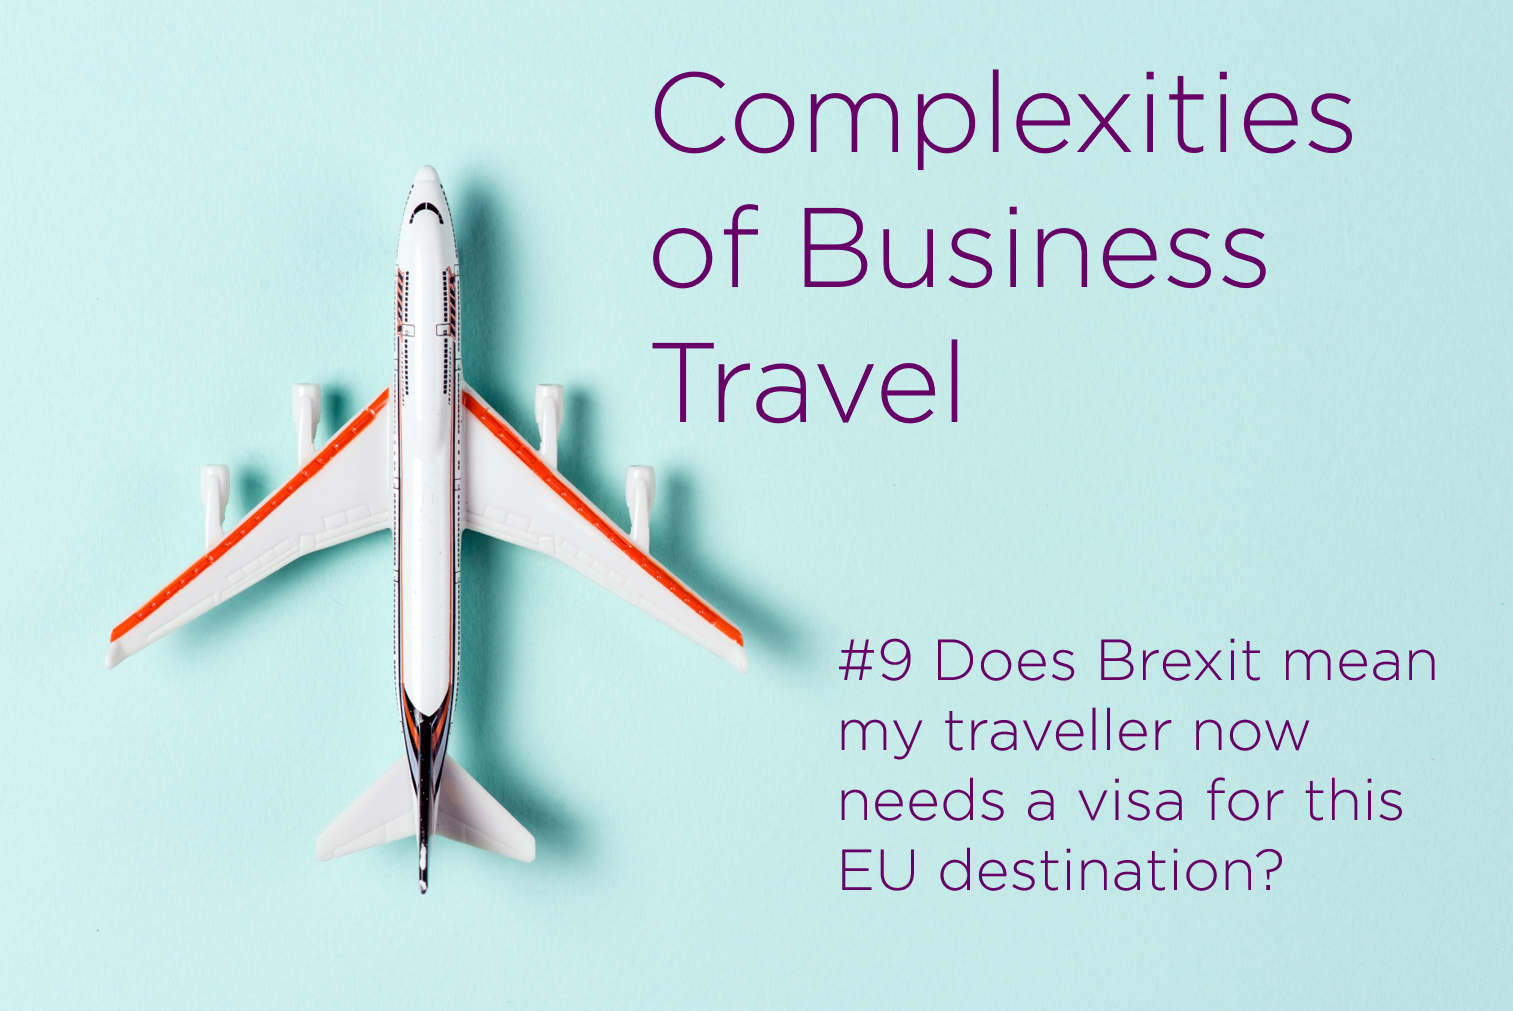 Complexities of Business Travel: Challenge:#9 Does Brexit mean my traveller needs a visa for their EU Destination.